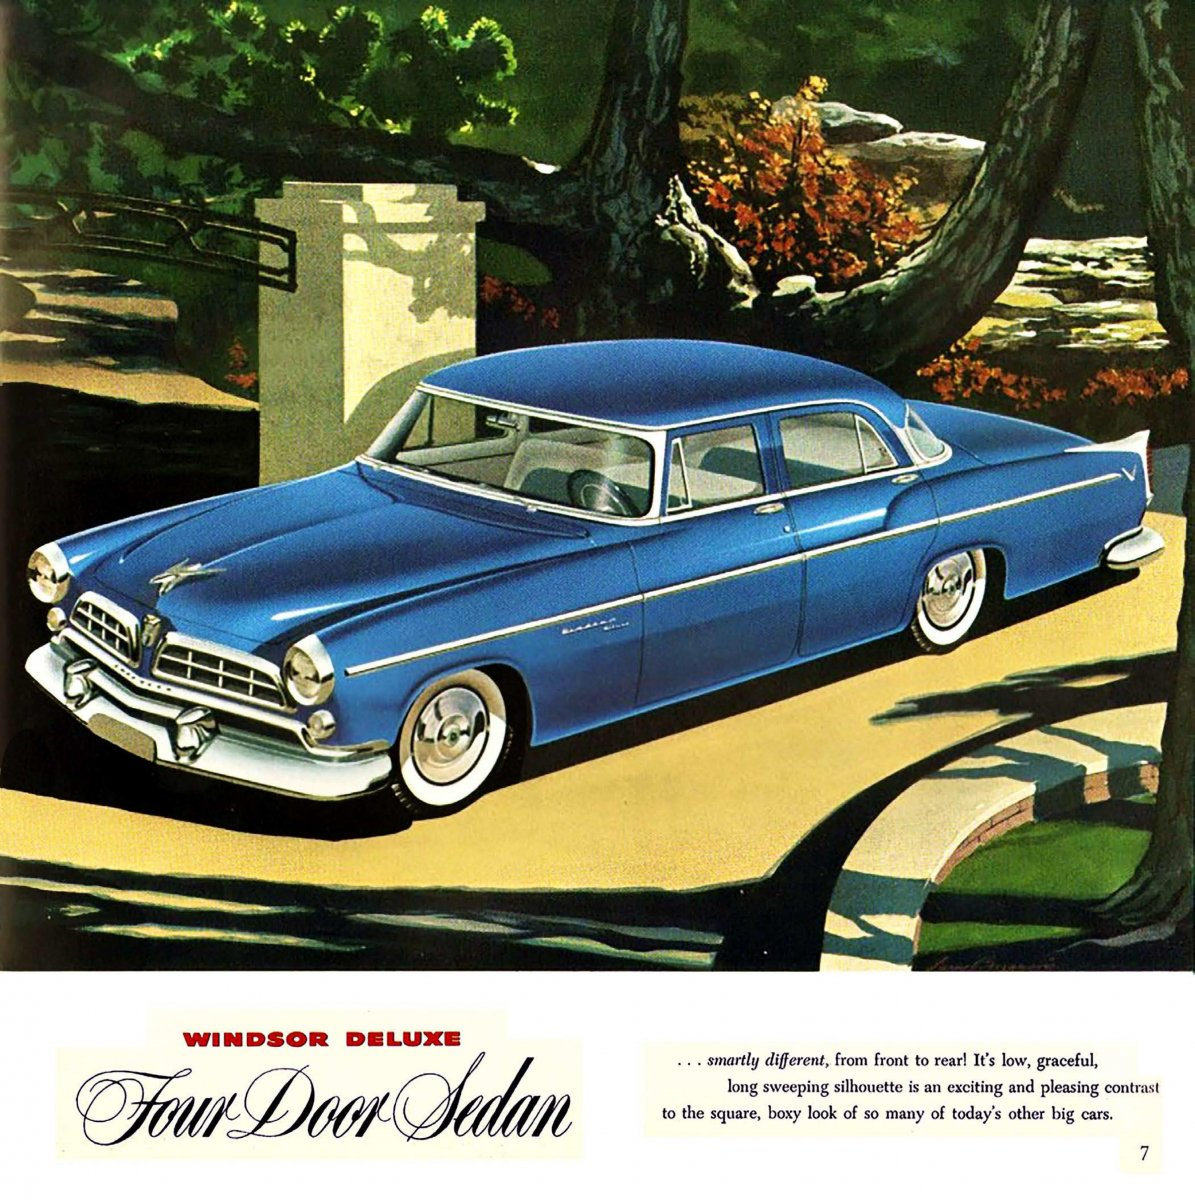 1955_Chrysler_Windsor_Brochure_1-16_07.jpg